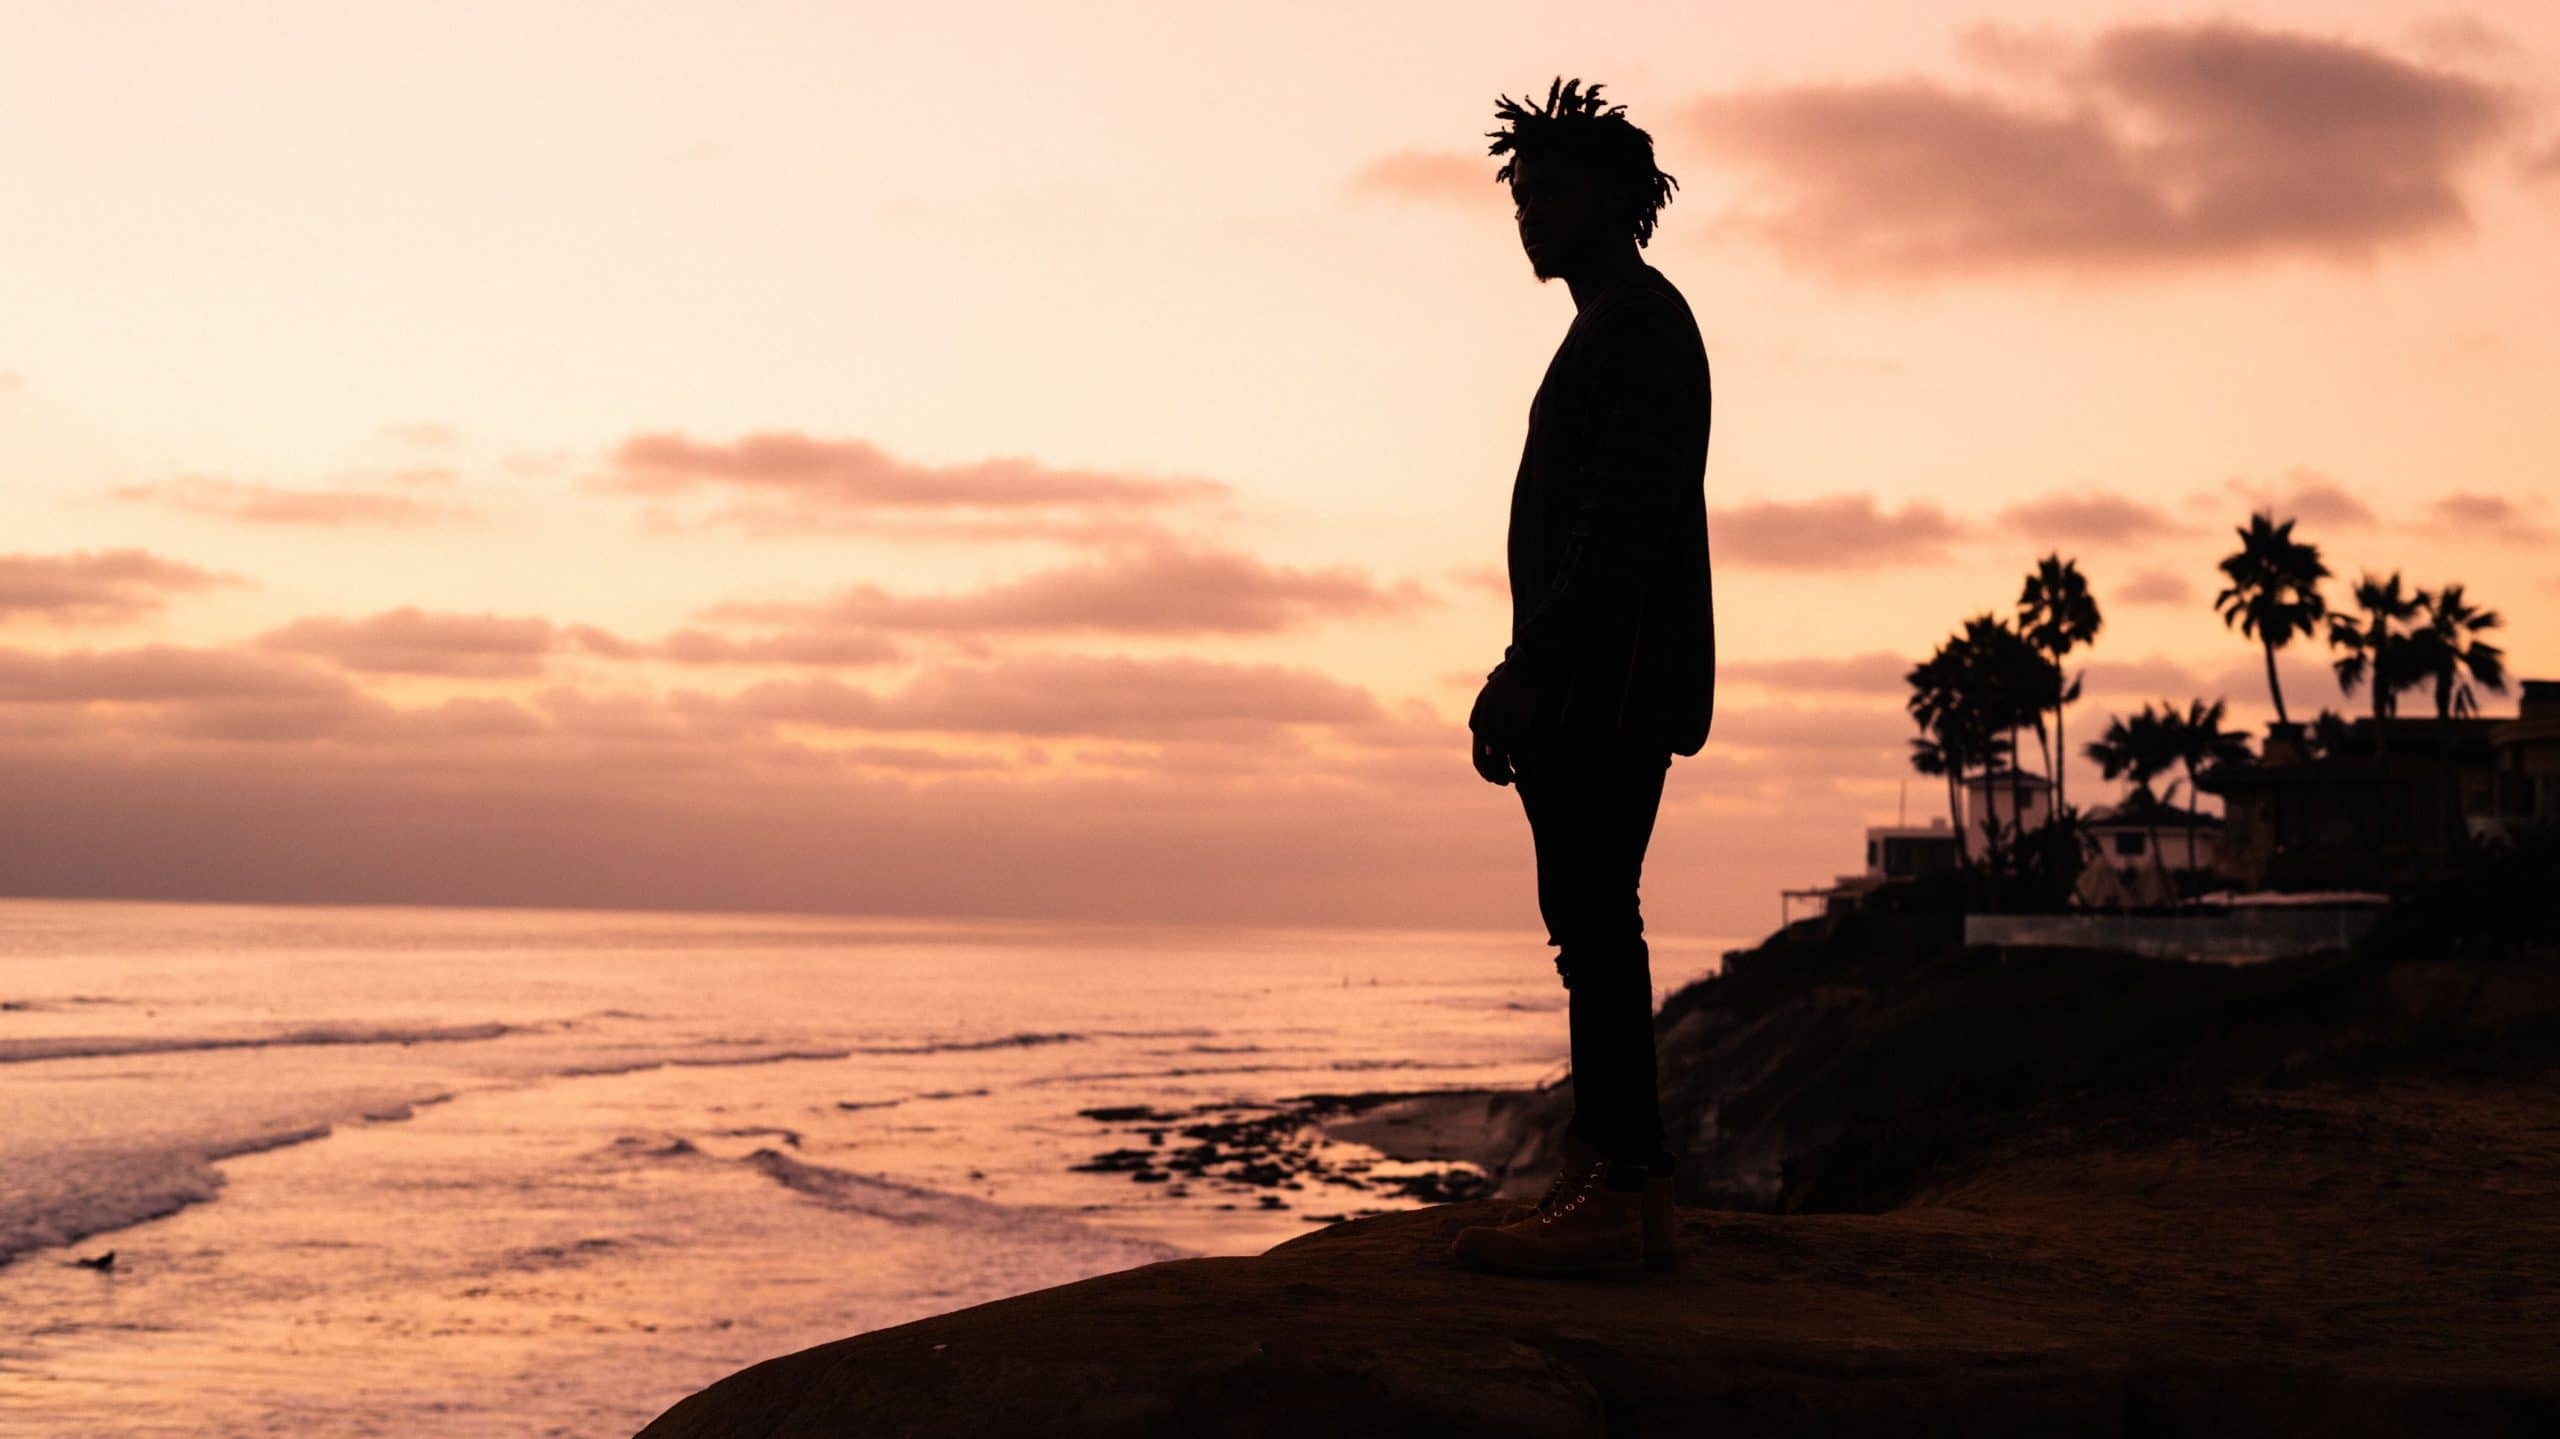 Amazing silhouette photograph - Tips for silhouette photography